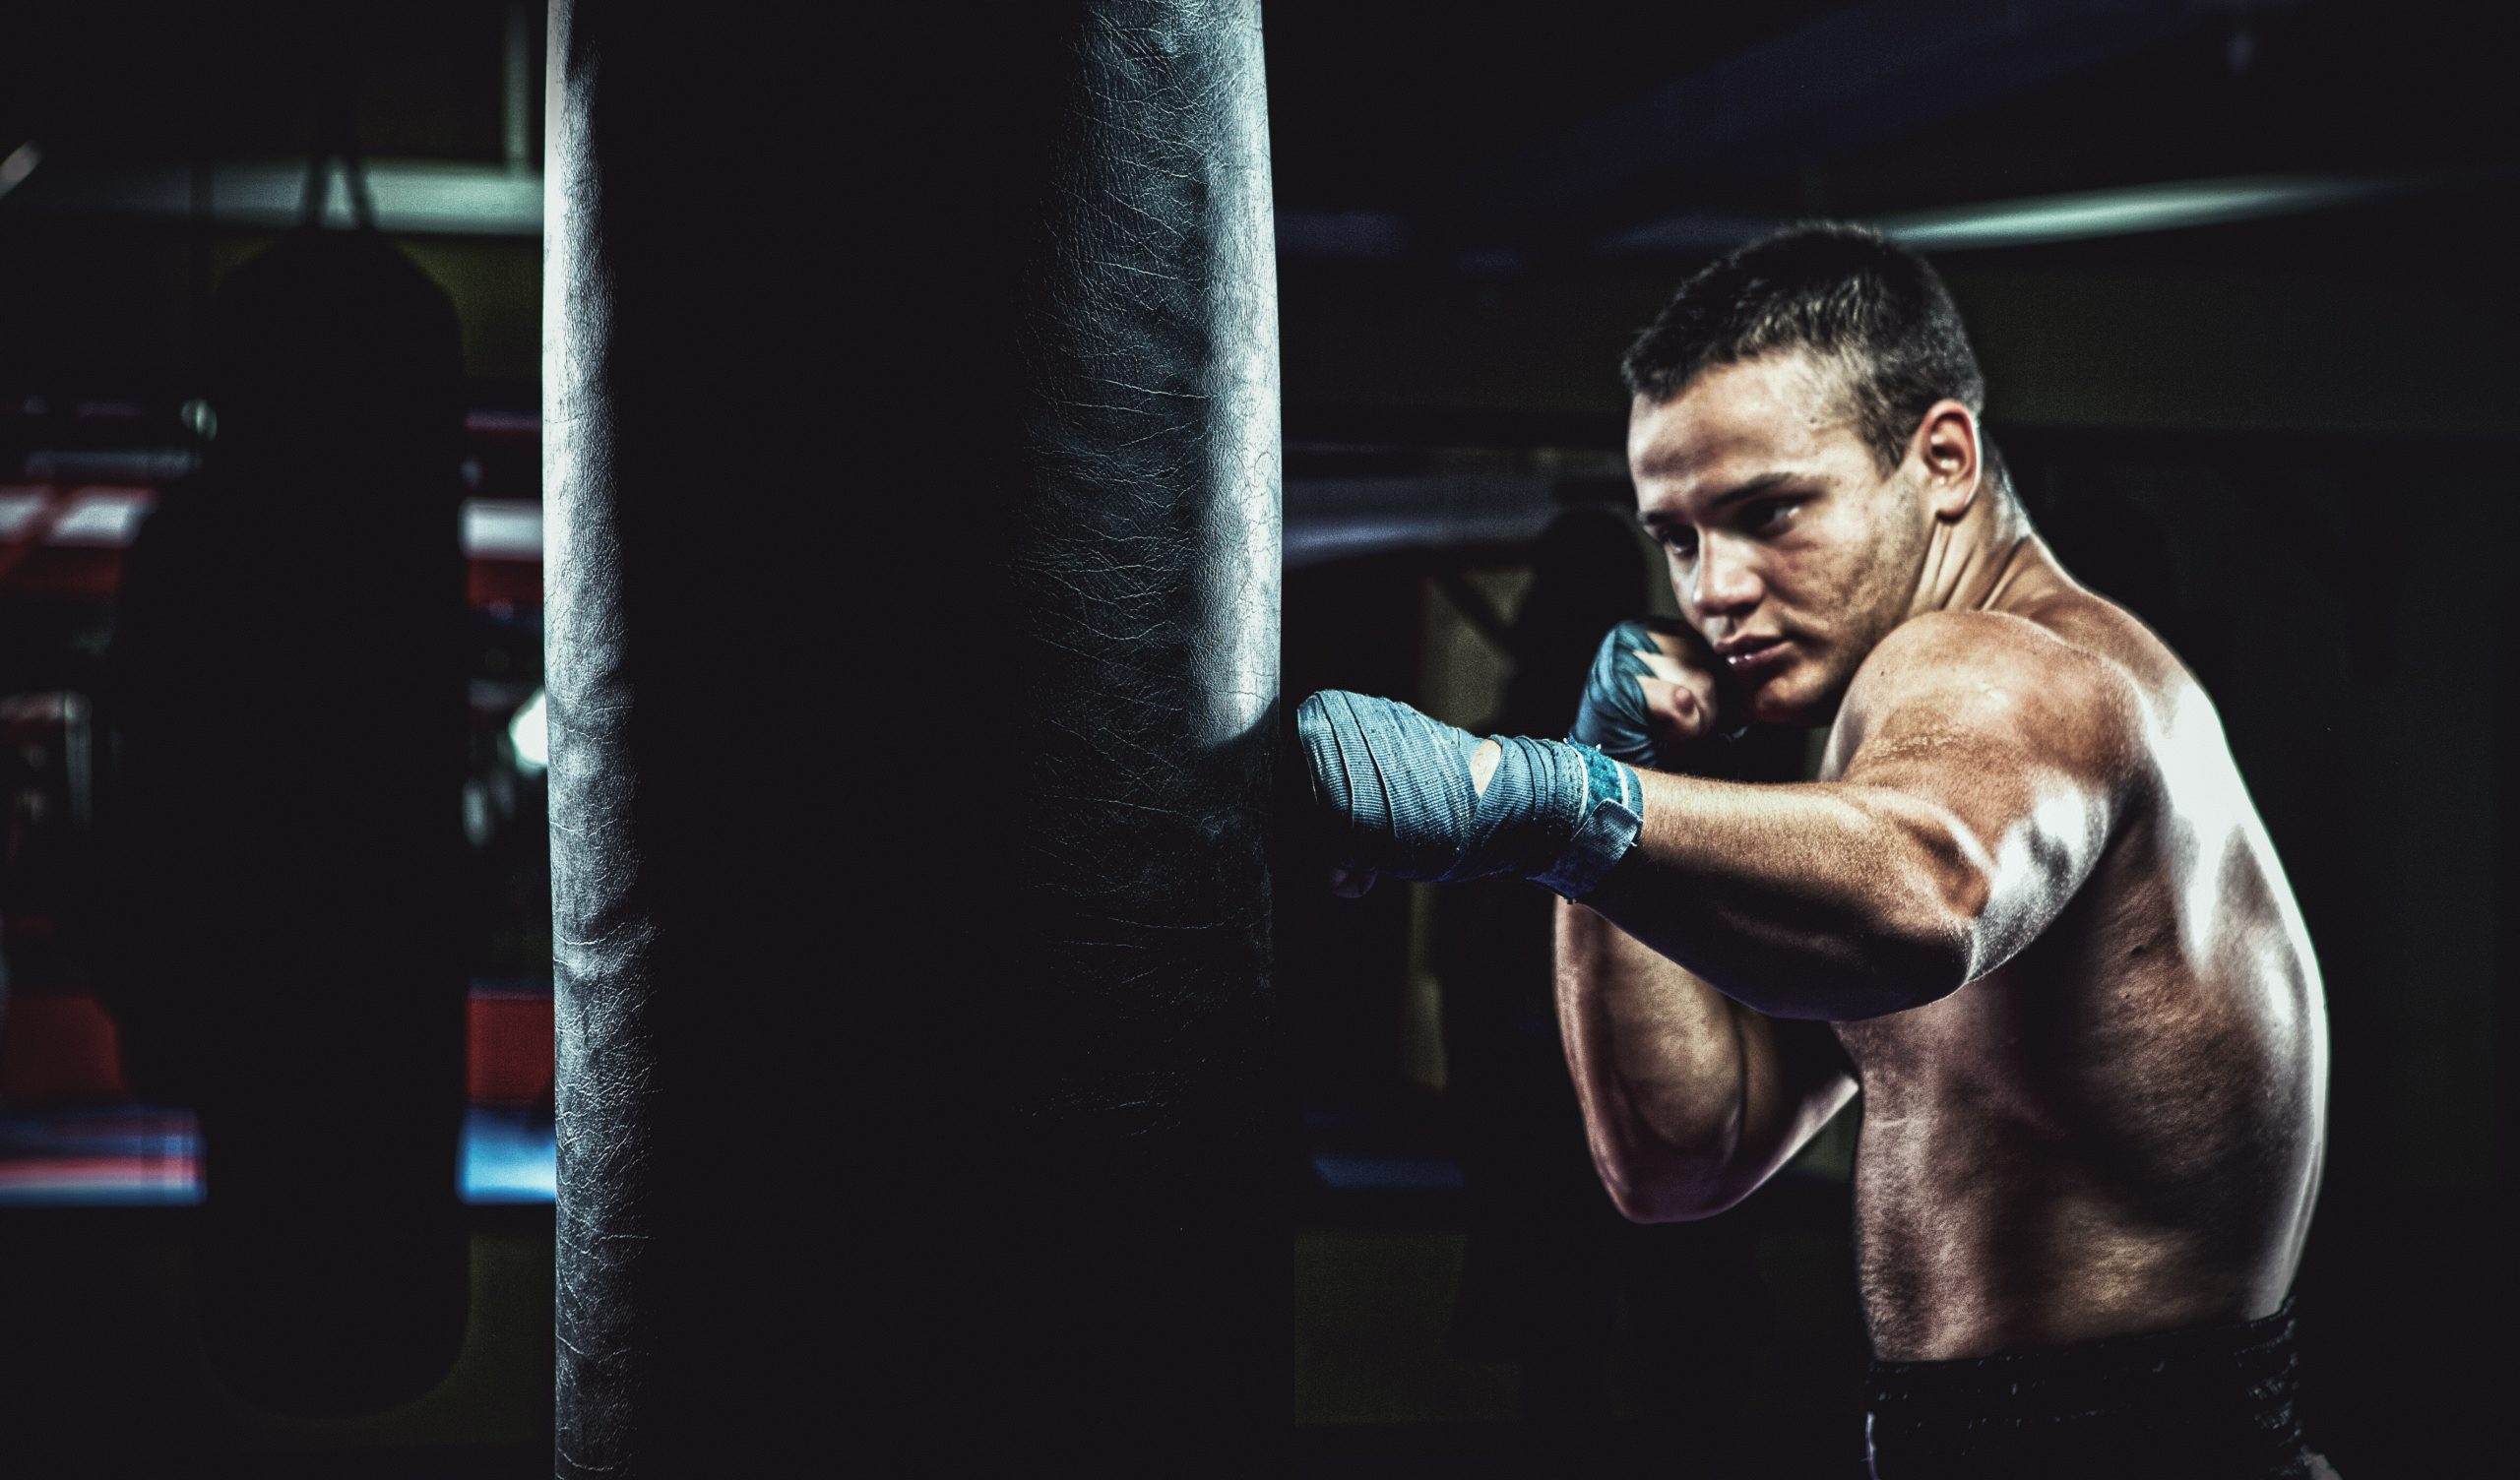 Kickboxing or Boxing Routine